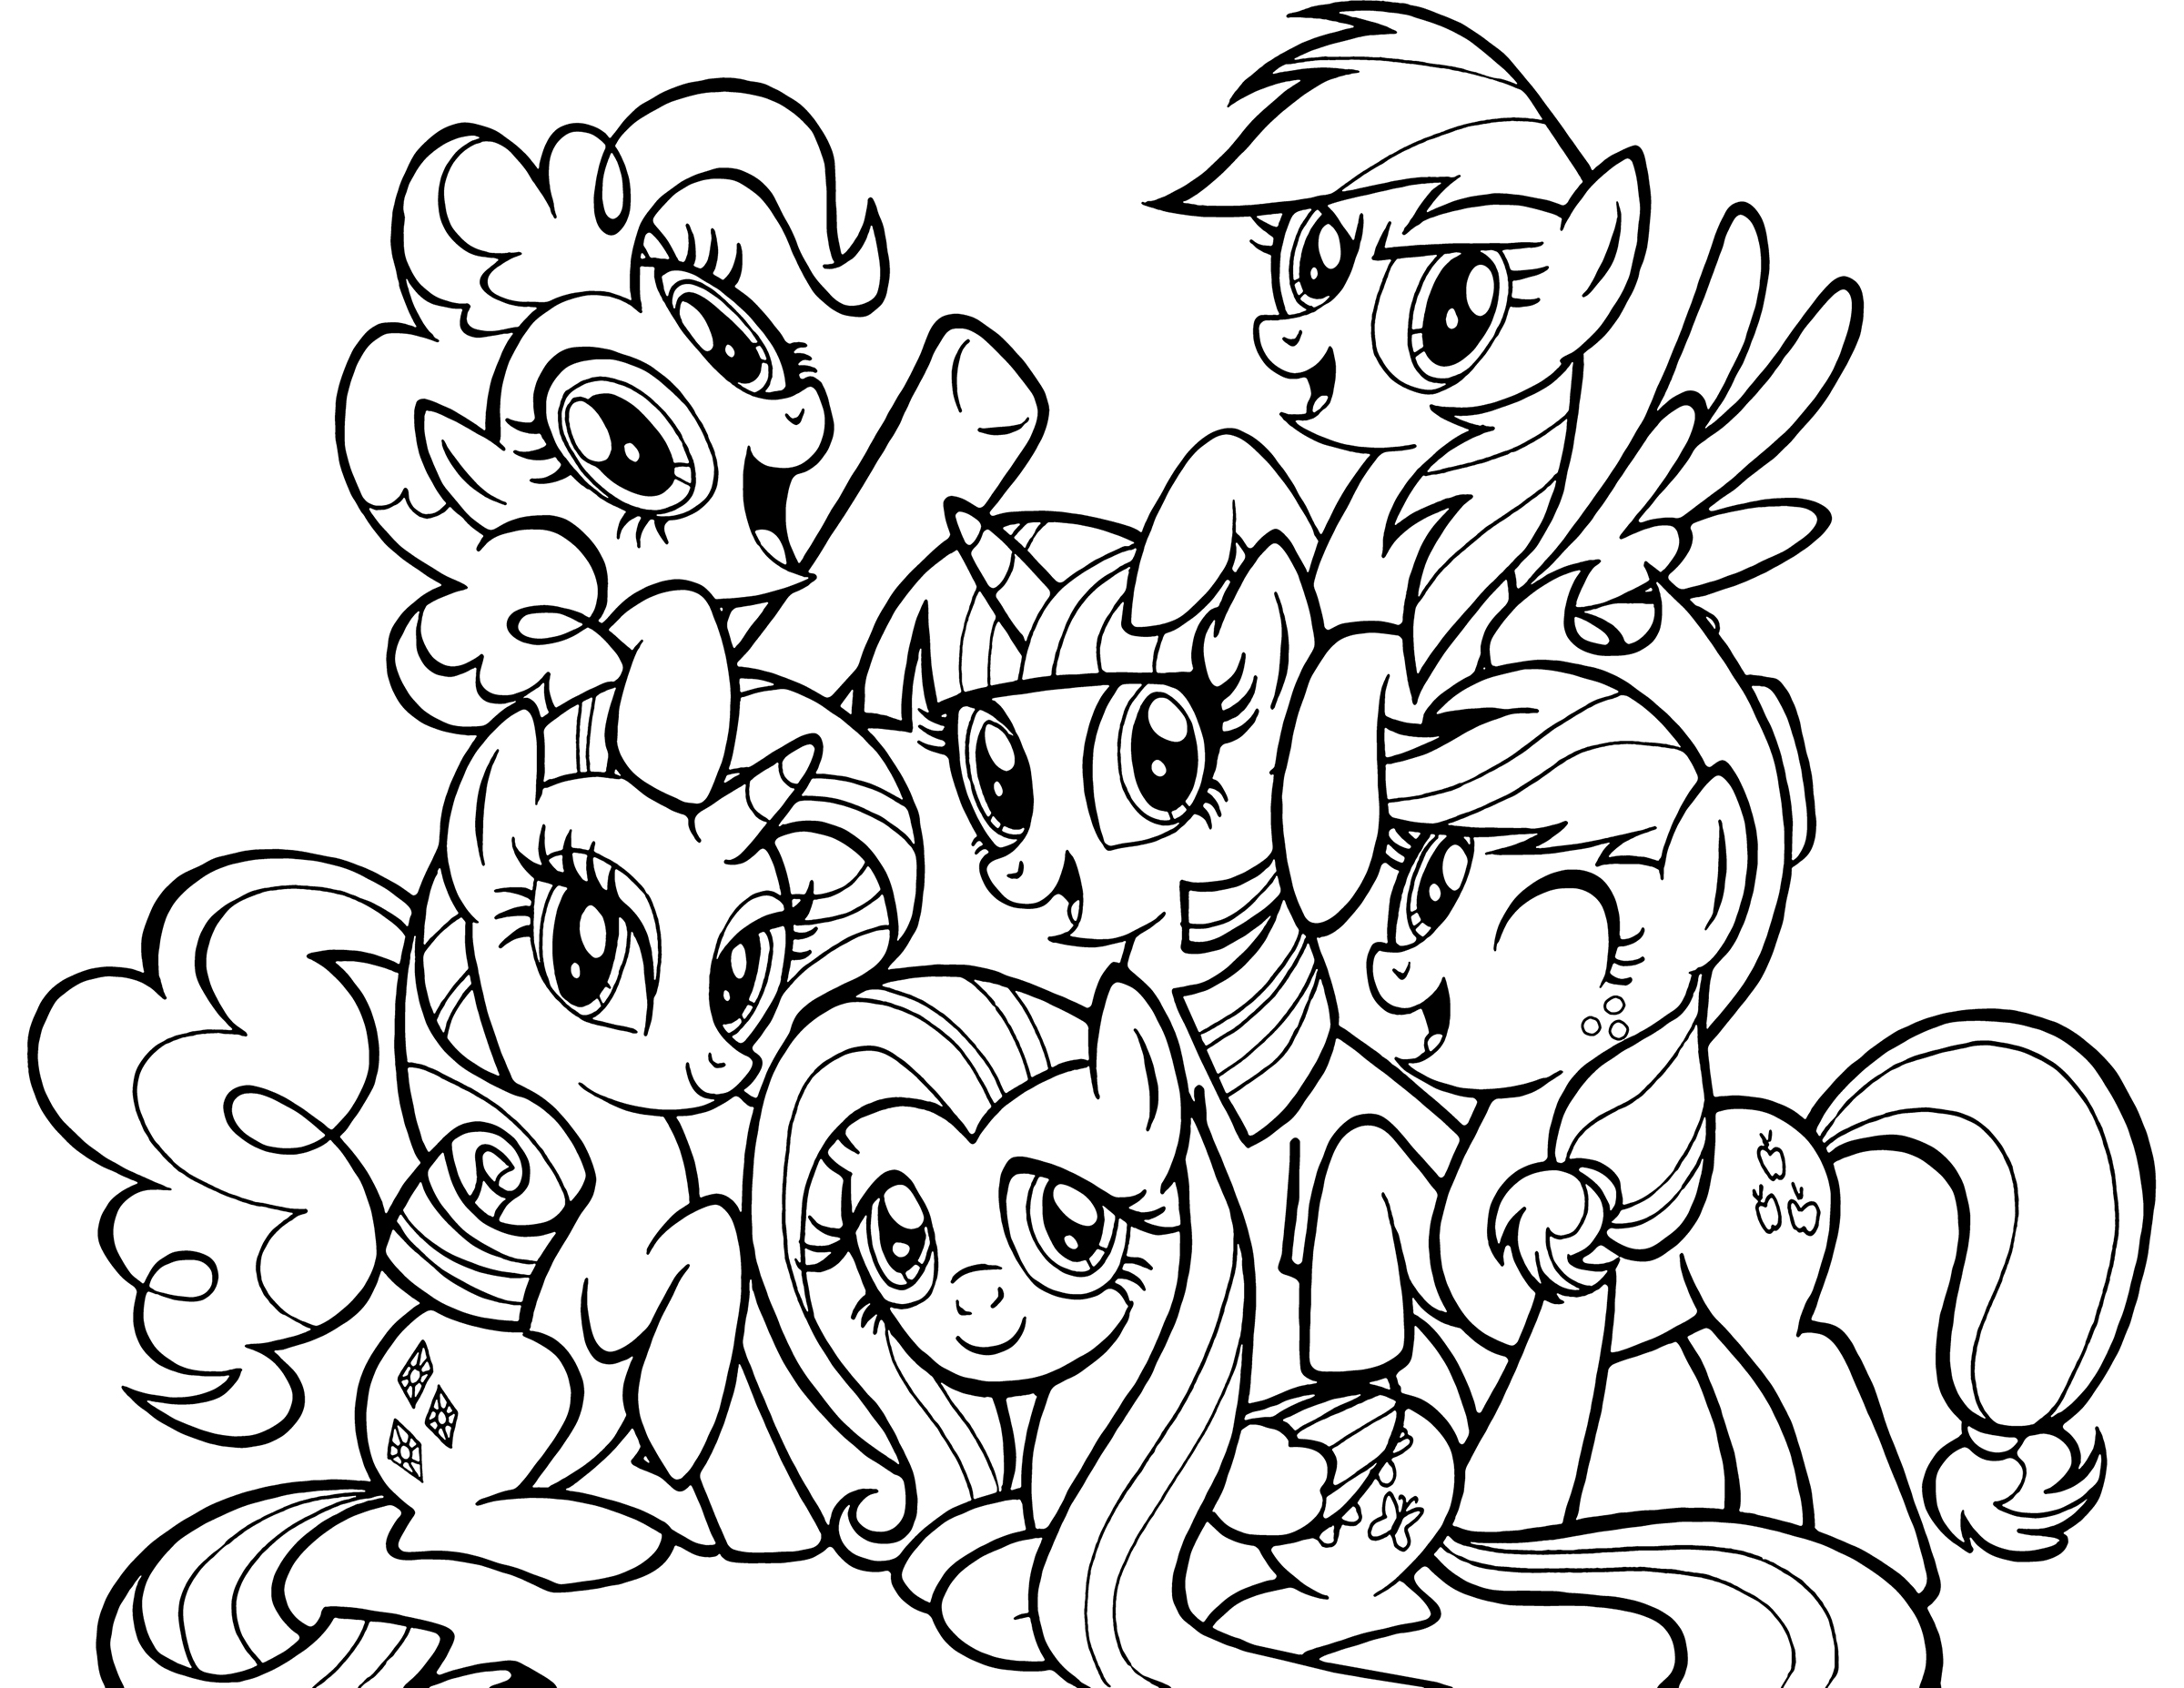 Ponies From Ponyville Coloring Pages Free Printable Pictures Of Ponyville